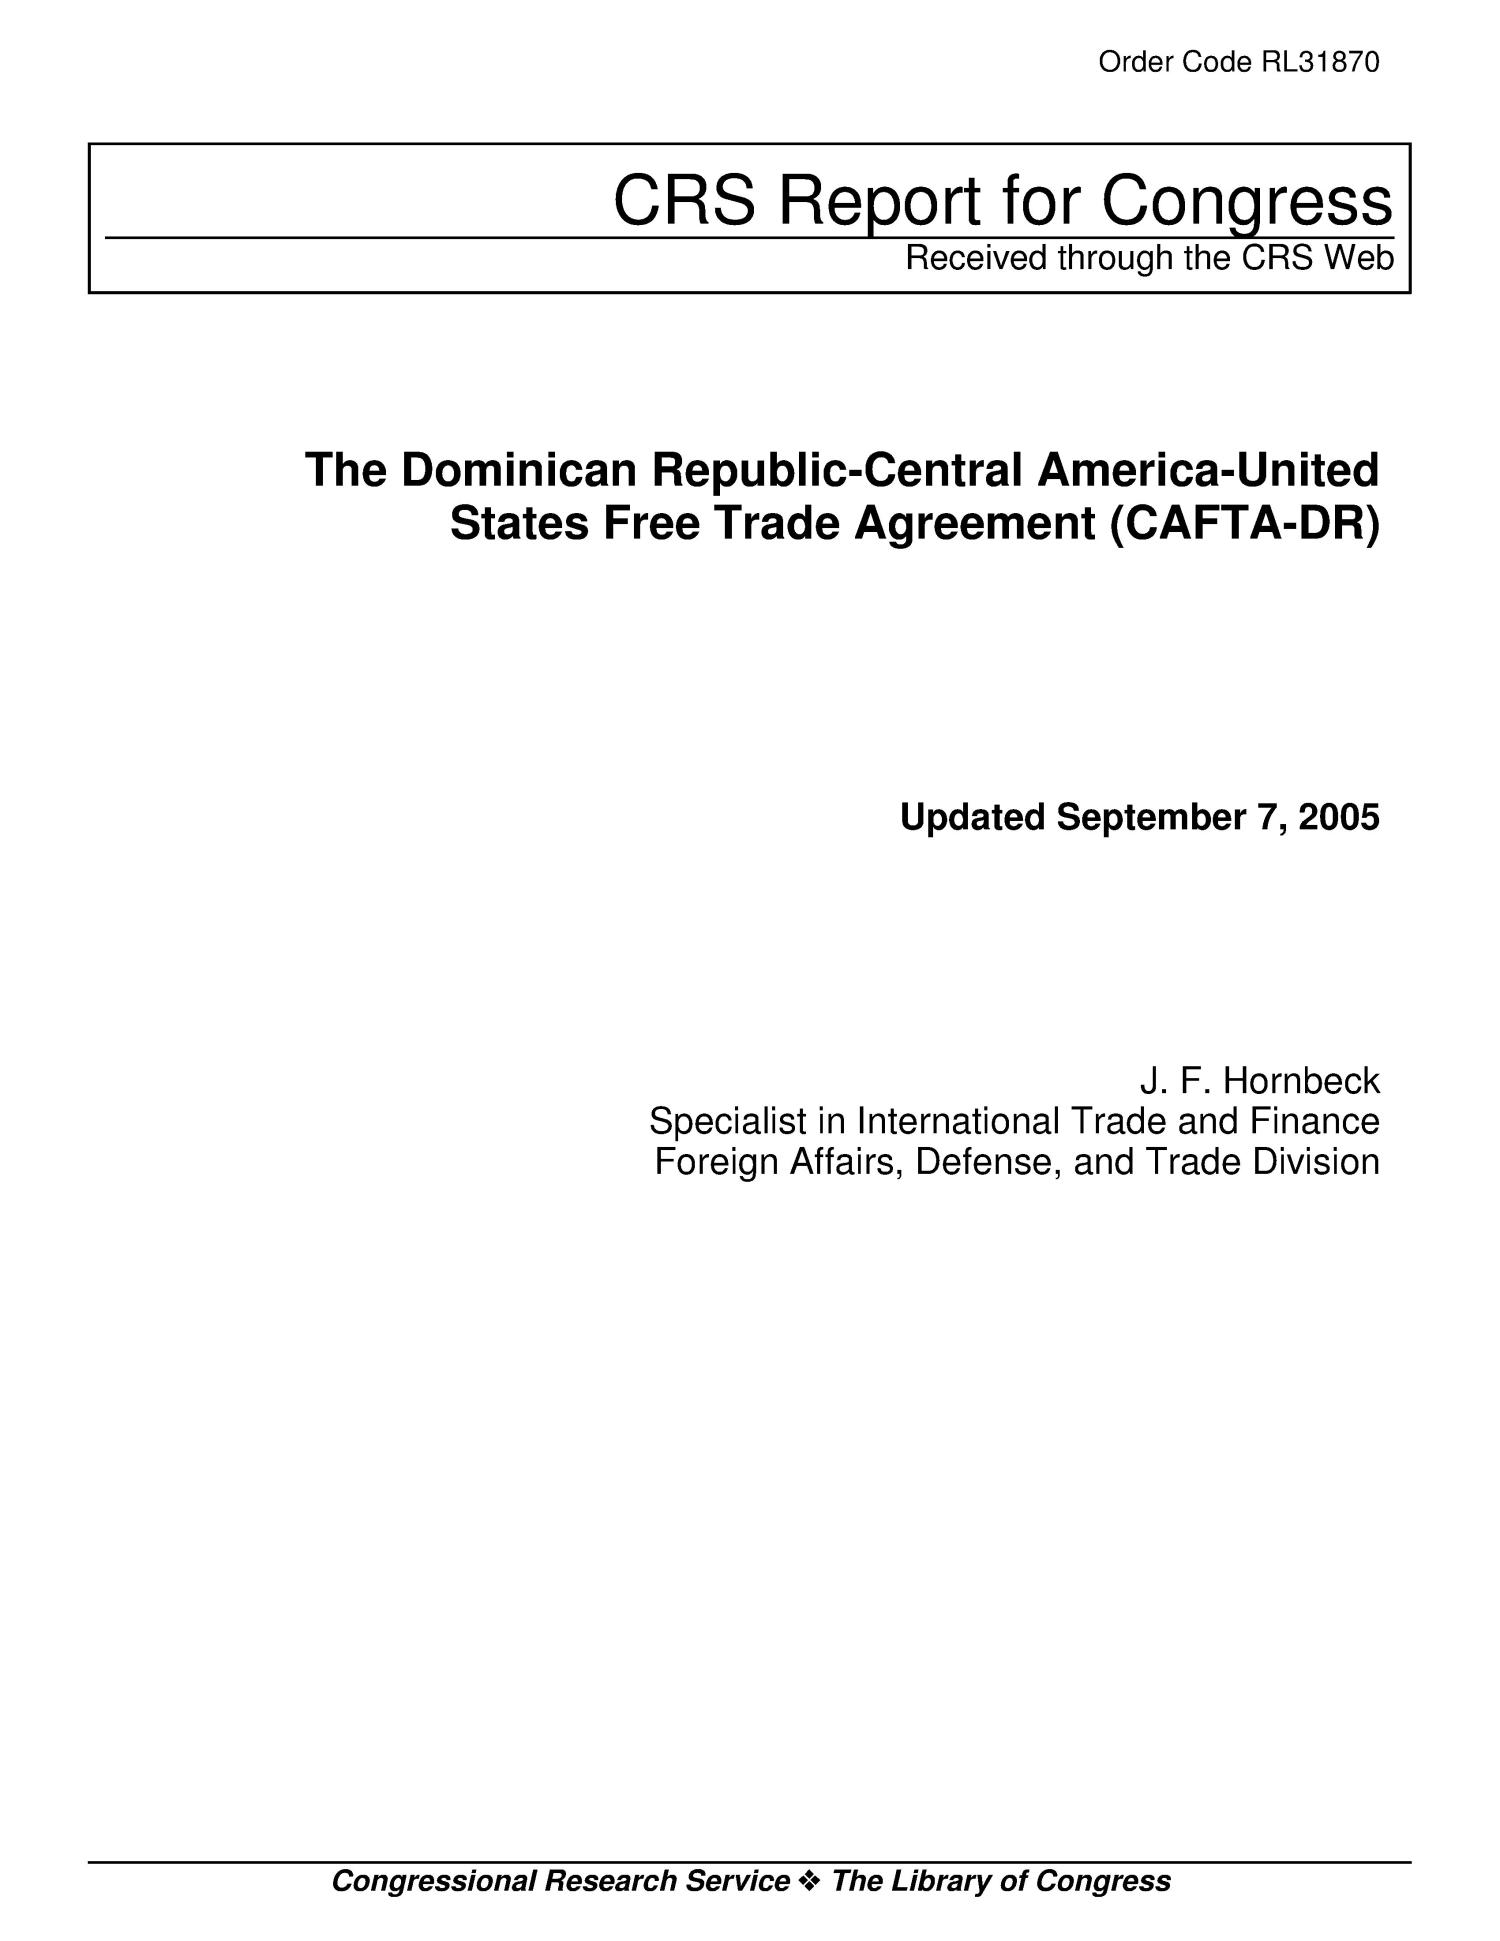 The Dominican Republic-Central America-United States Free Trade Agreement (CAFTA-DR)                                                                                                      [Sequence #]: 1 of 39